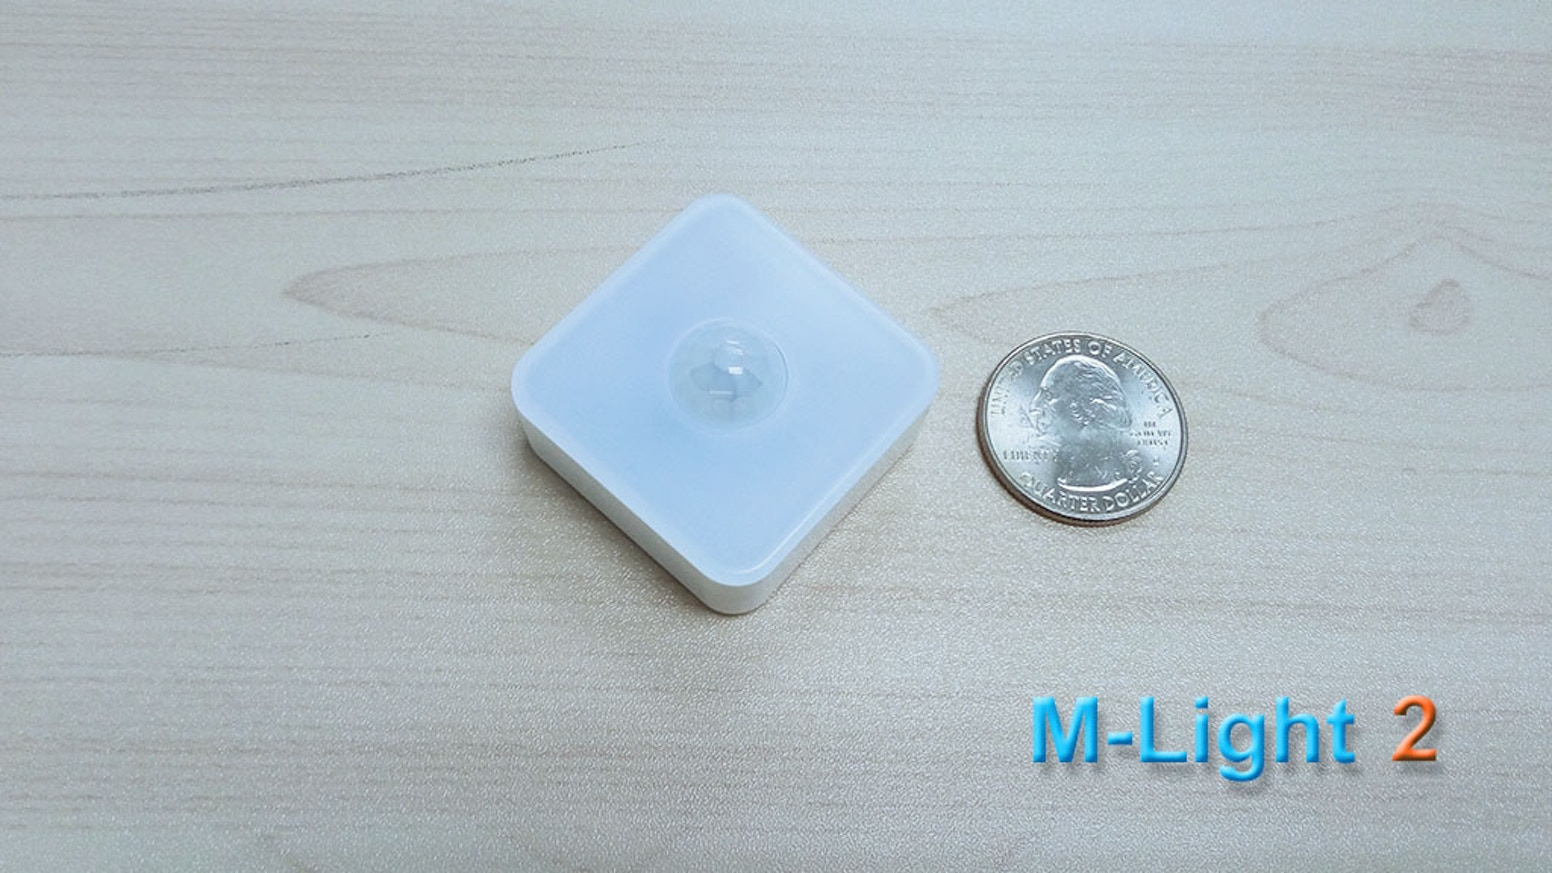 A motion sensor and light activated, rechargeable battery powered, adjustable light miniature for night bathroom trips, cabinets, etc.